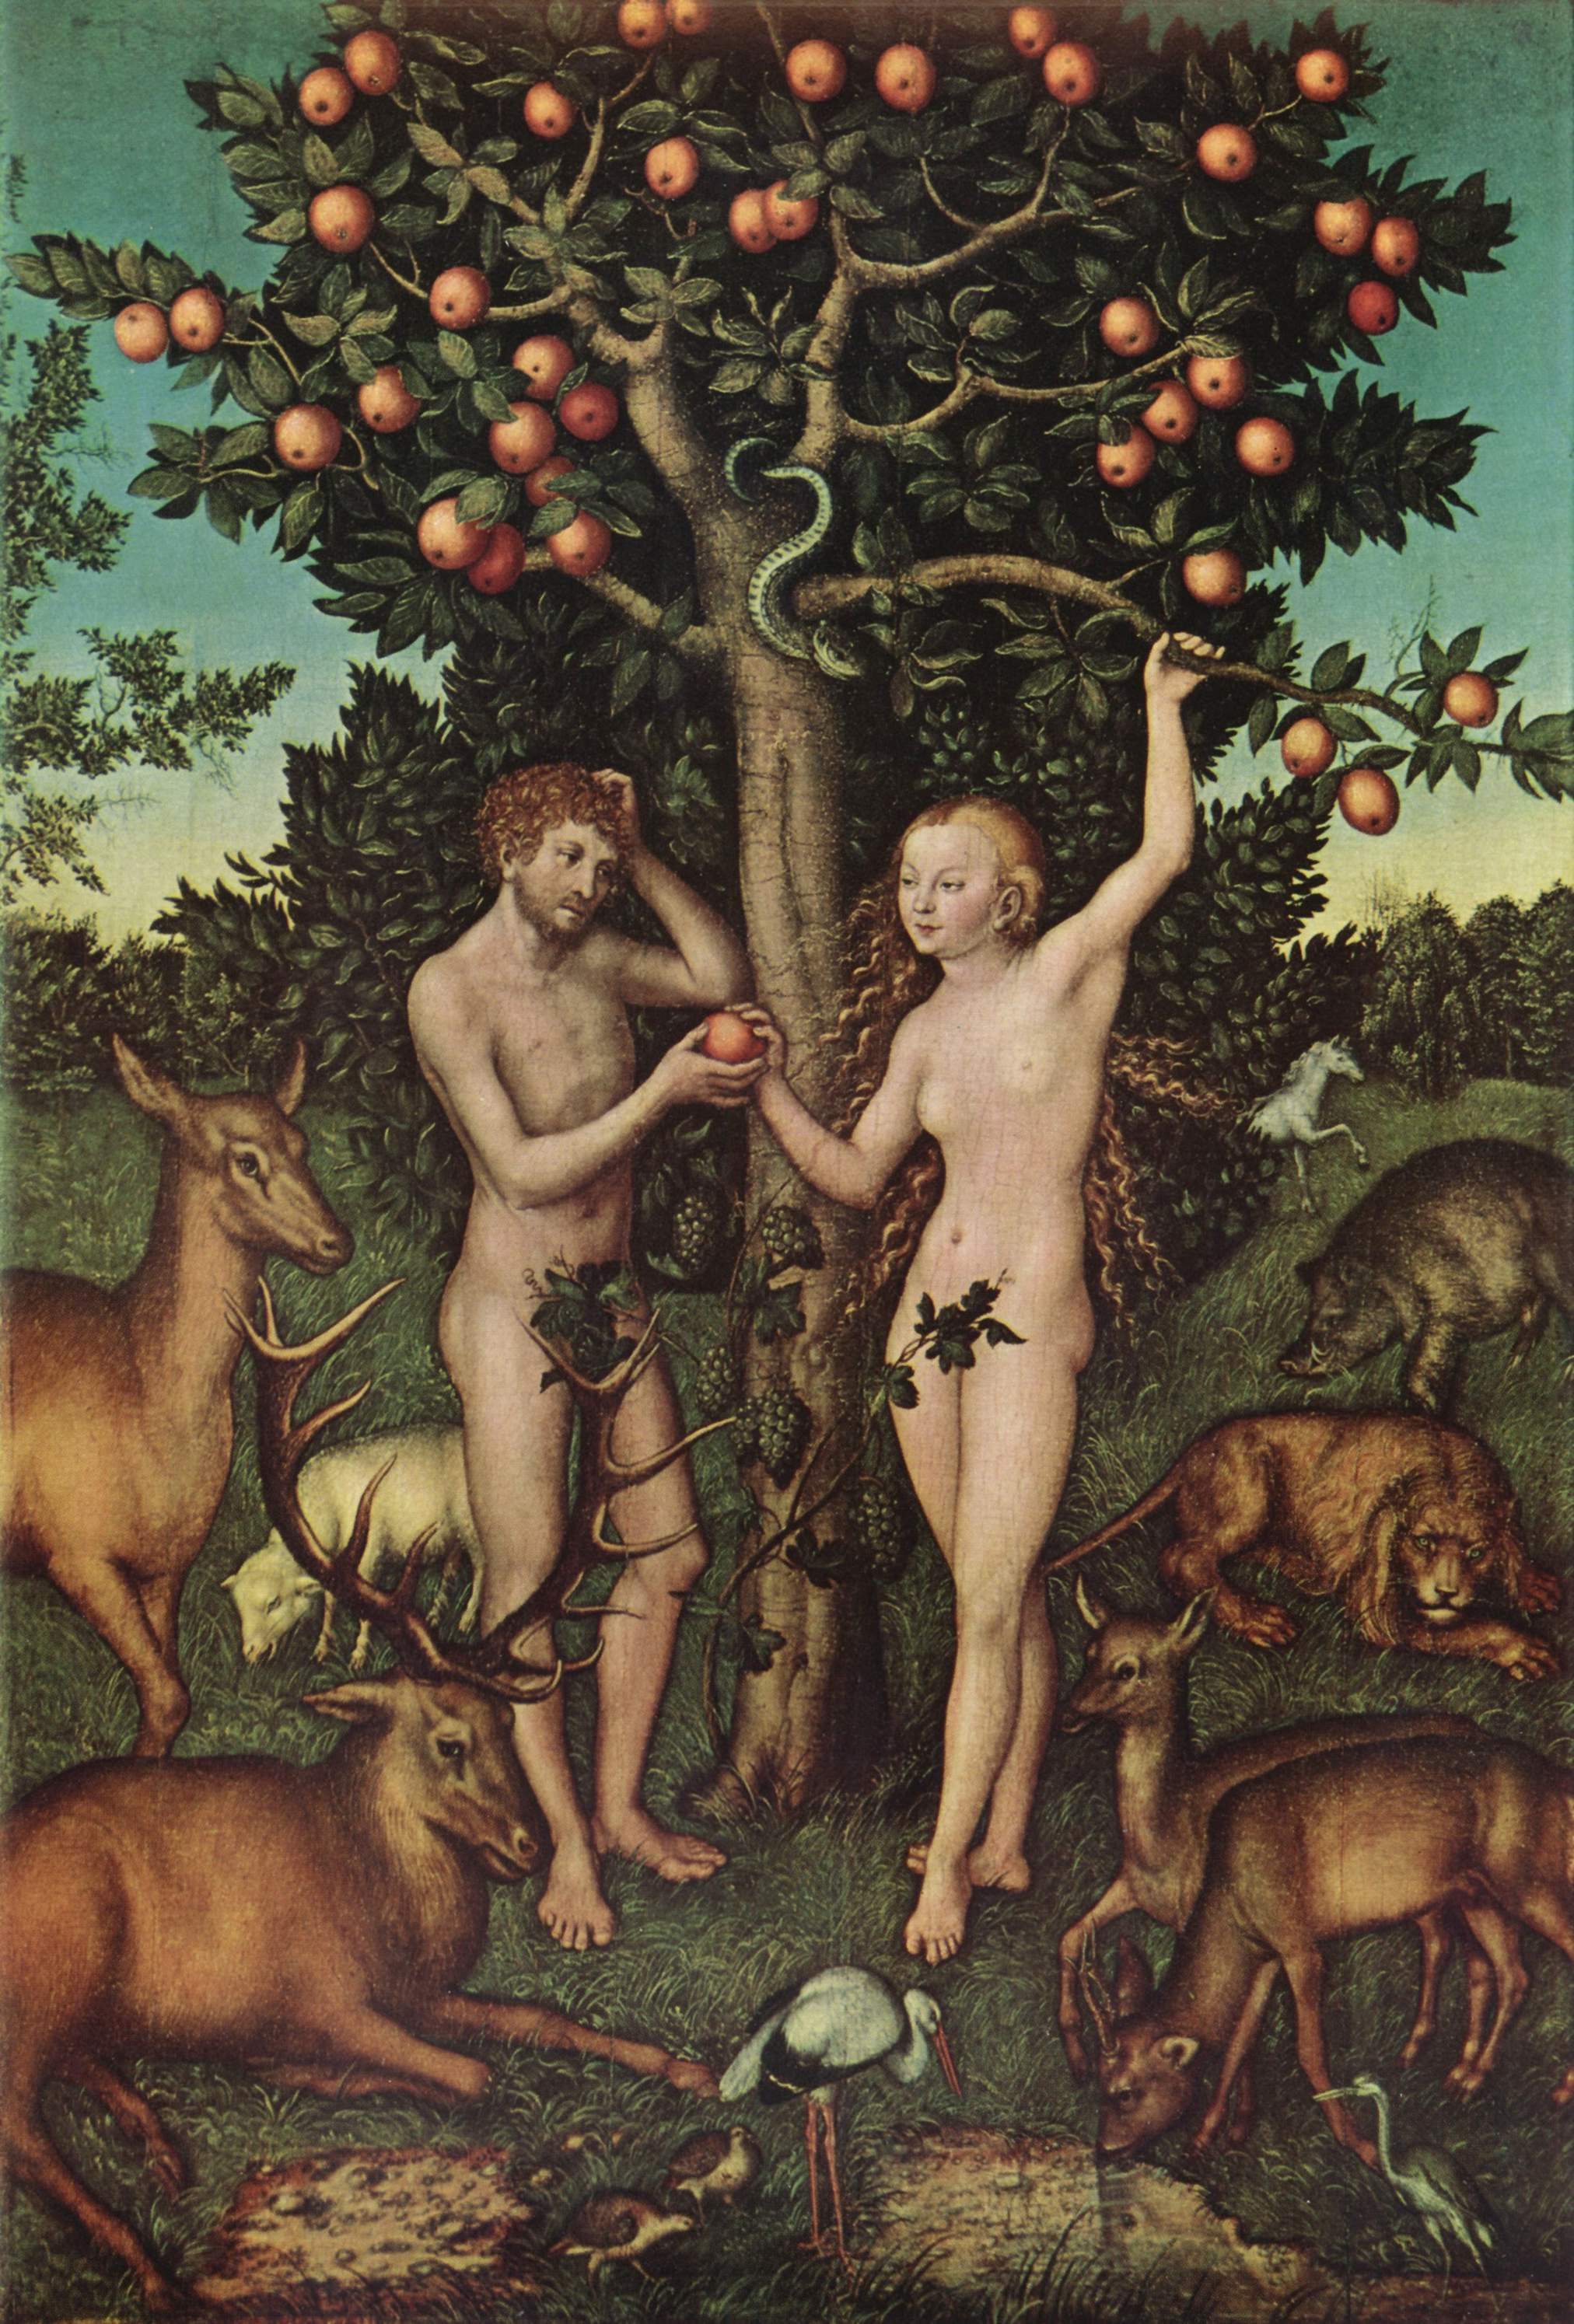 https://i0.wp.com/upload.wikimedia.org/wikipedia/commons/4/45/Lucas_Cranach_d._%C3%84._001.jpg